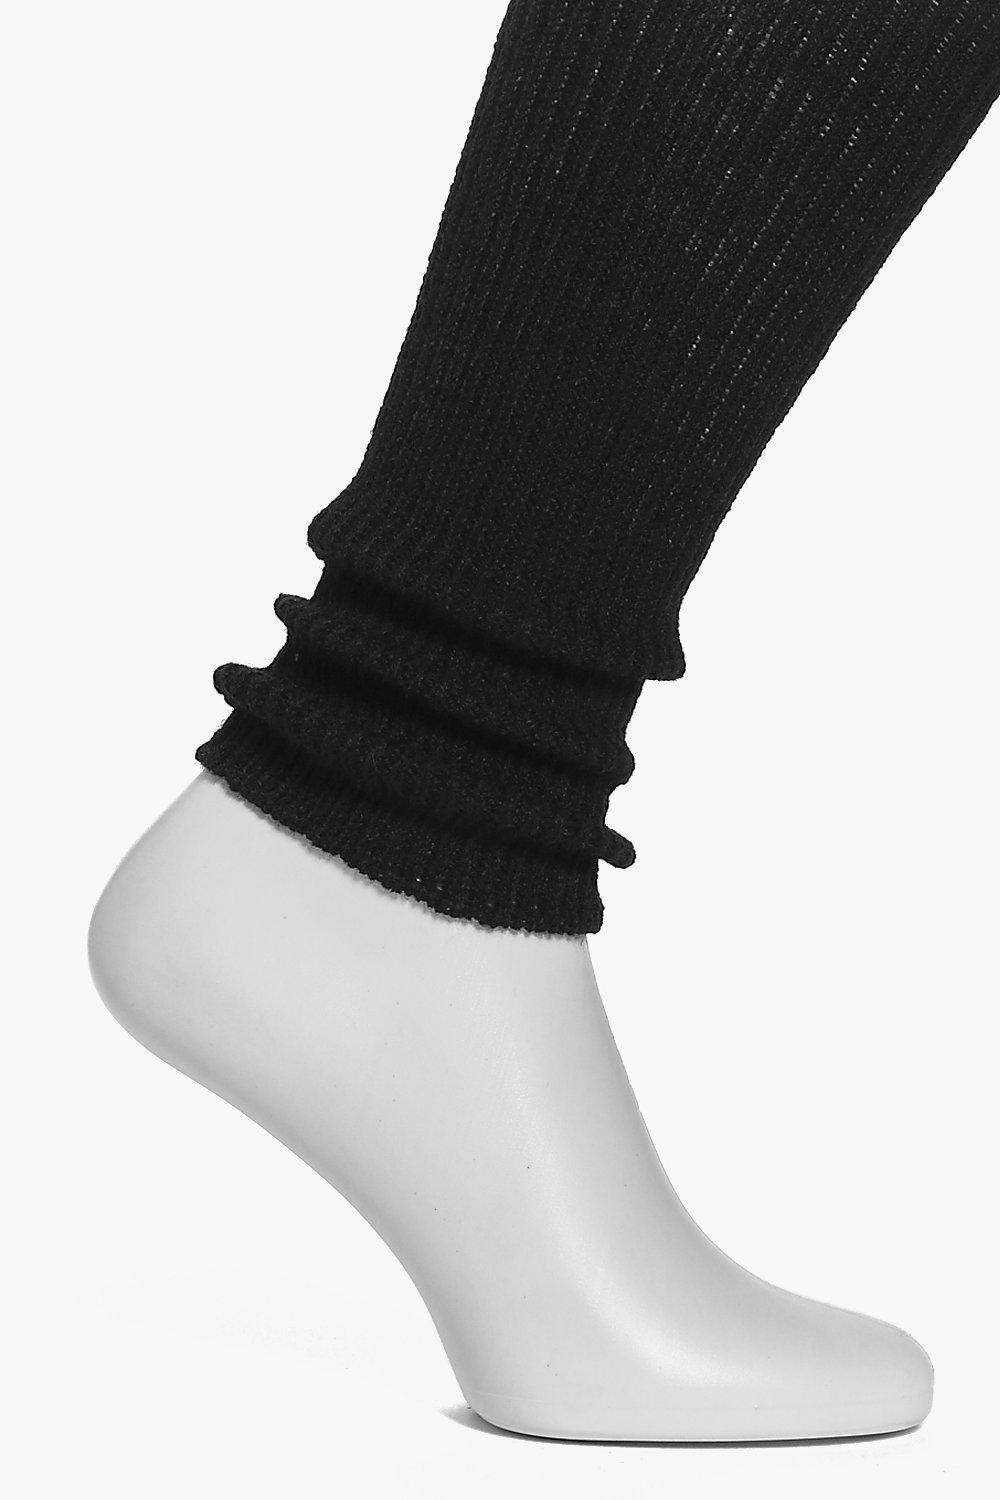 Short Knitted Ballet Leg Warmers black